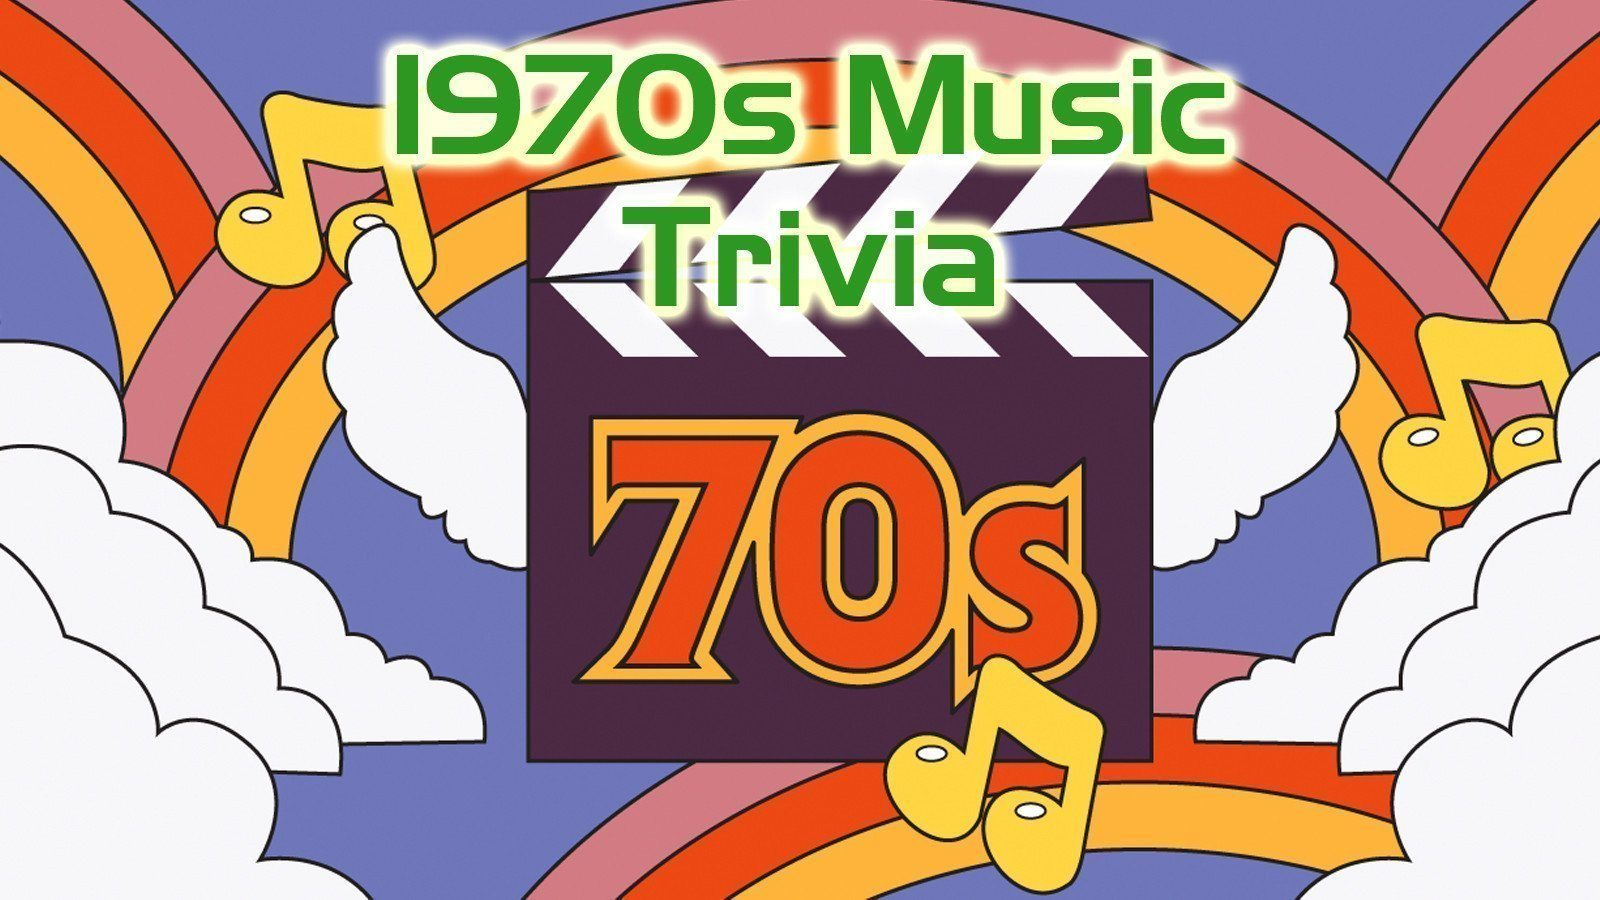 Free Trivia Night Questions - 1970s Music